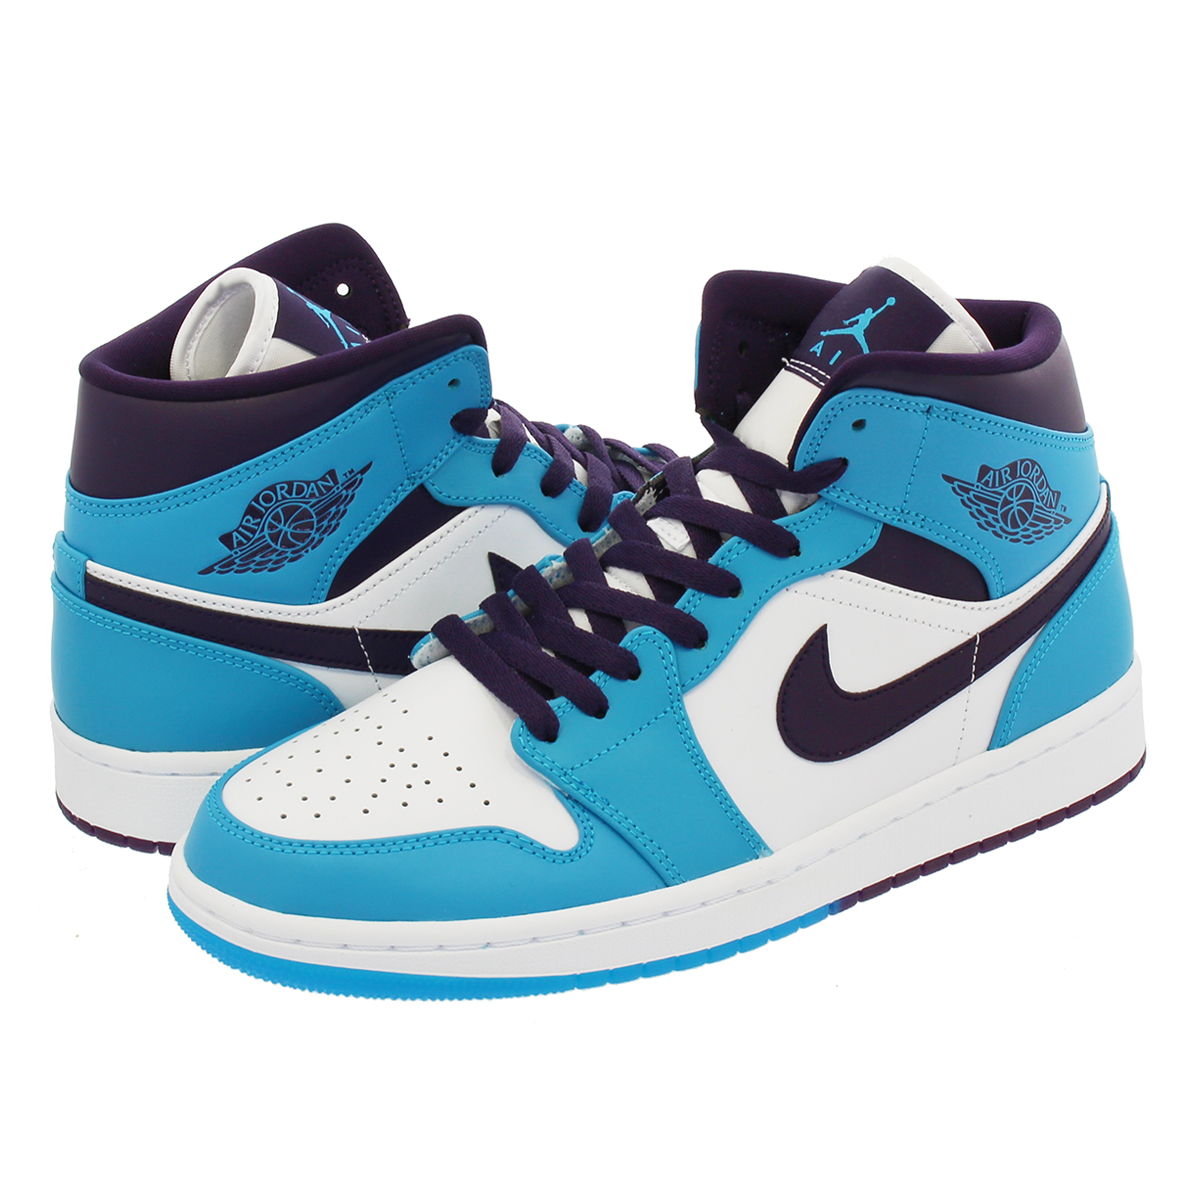 san francisco b7705 2c190 NIKE AIR JORDAN 1 MID Nike Air Jordan 1 mid BLUE LAGOON GRAND PURPLE  ...